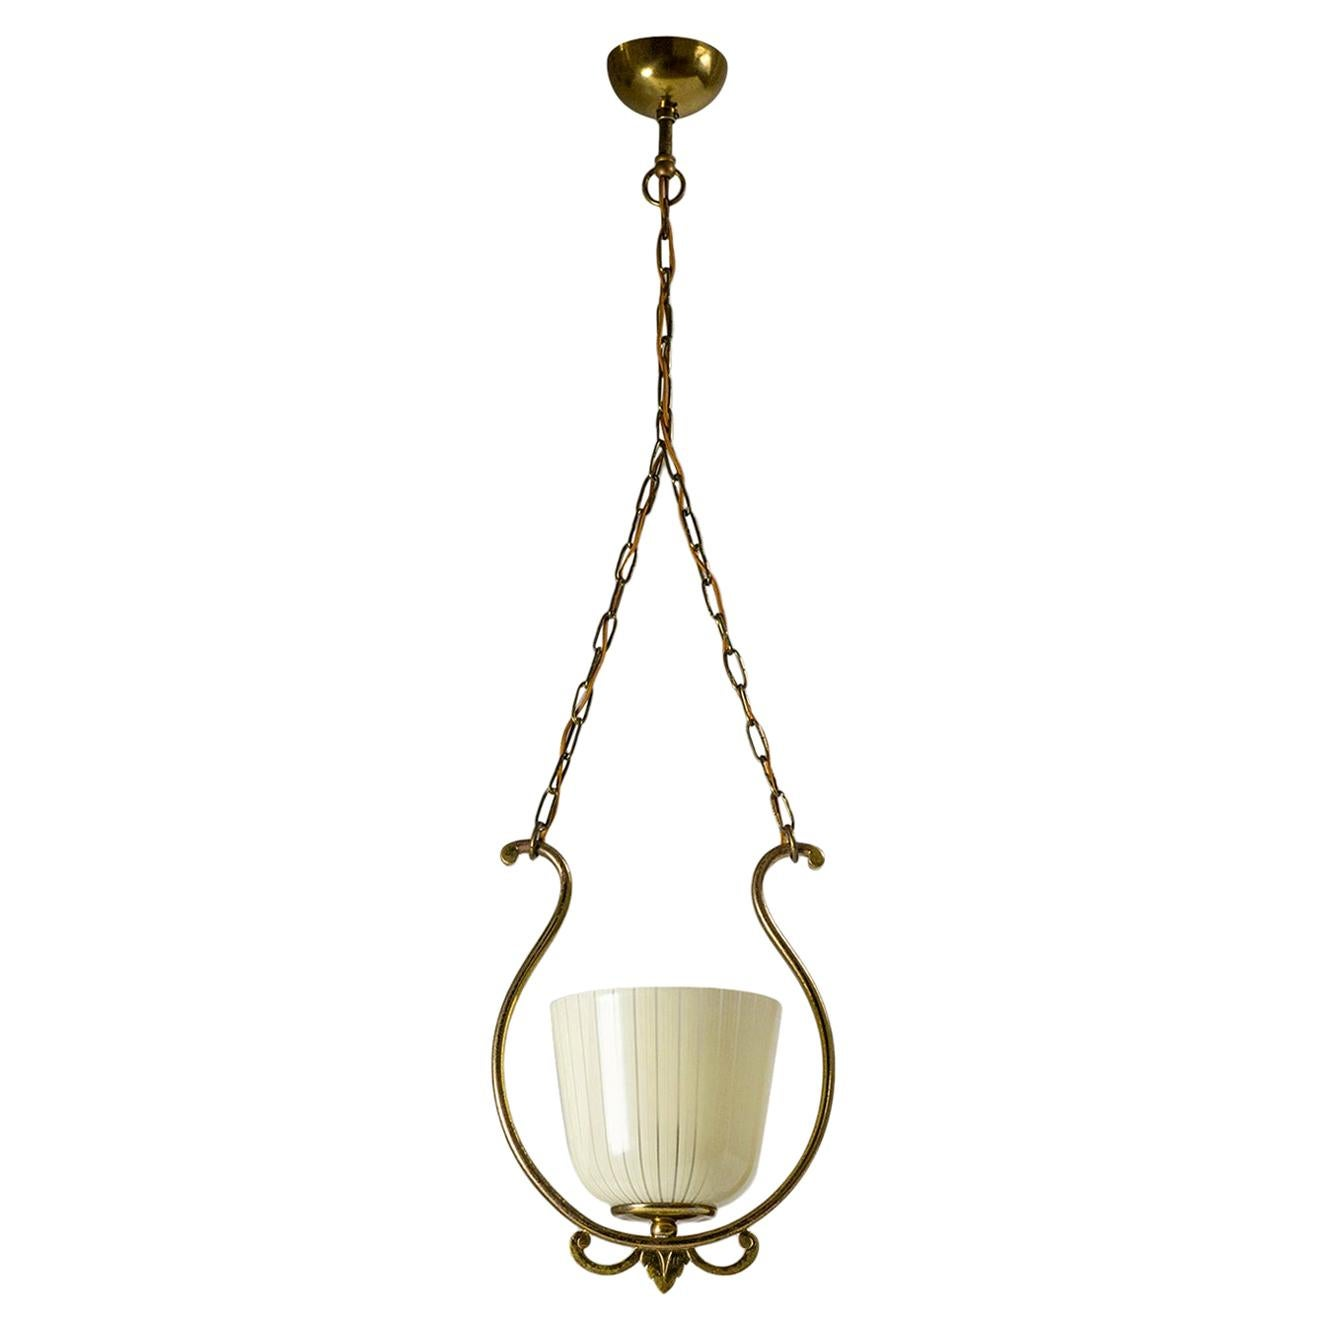 1940s Brass and Enameled Glass Lantern